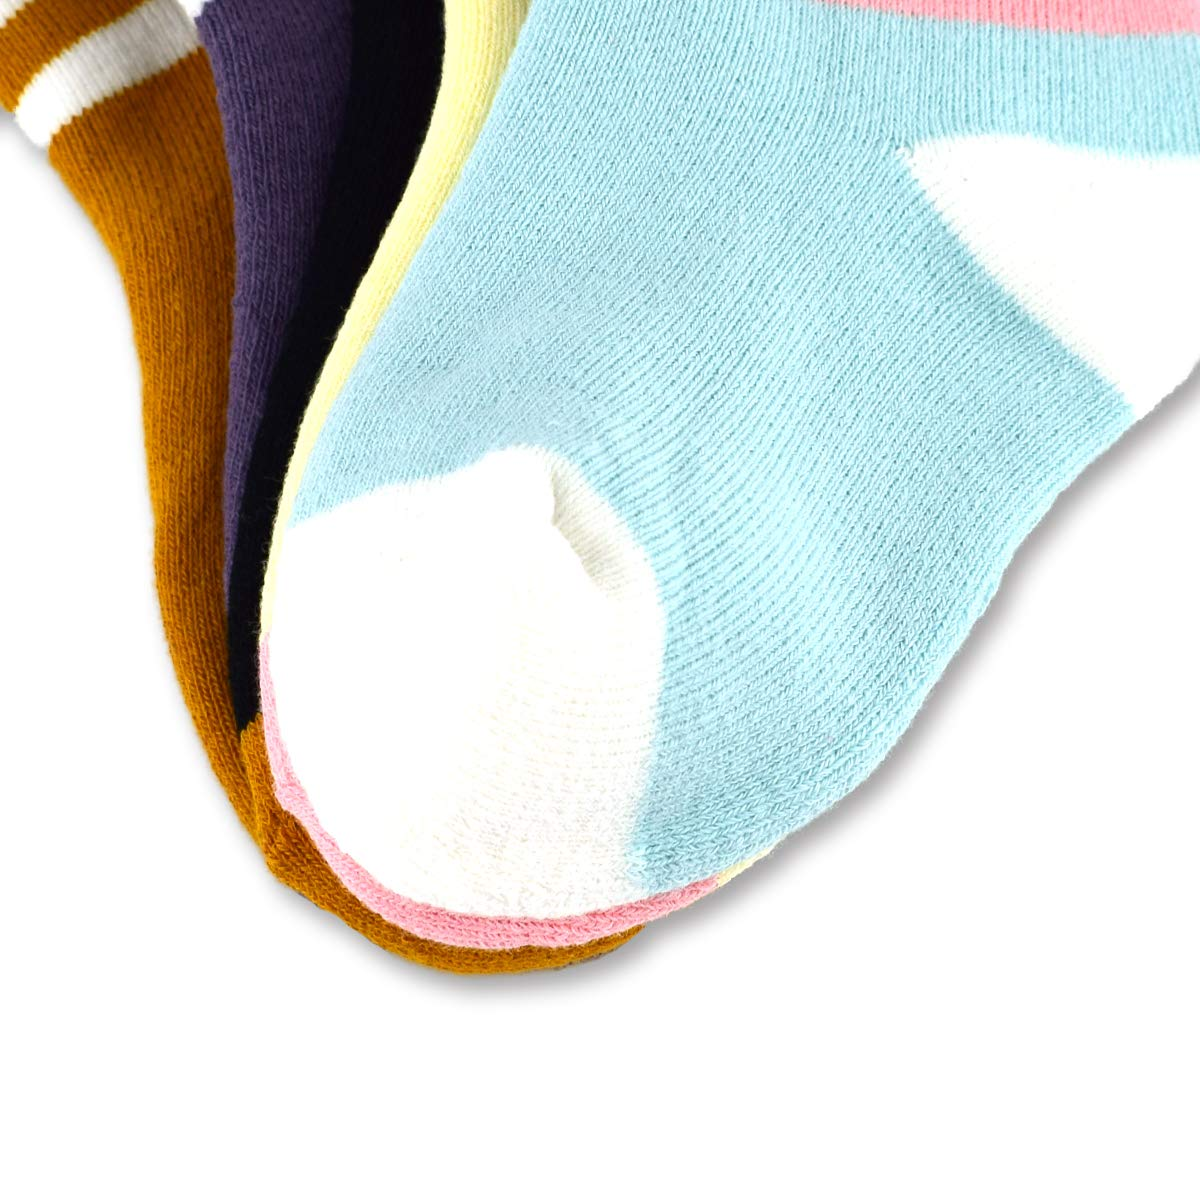 Kids Colorful Winter Soft Warm Thick Knit Cotton Crew Socks 5 Pairs For Boys Girls 4-6T